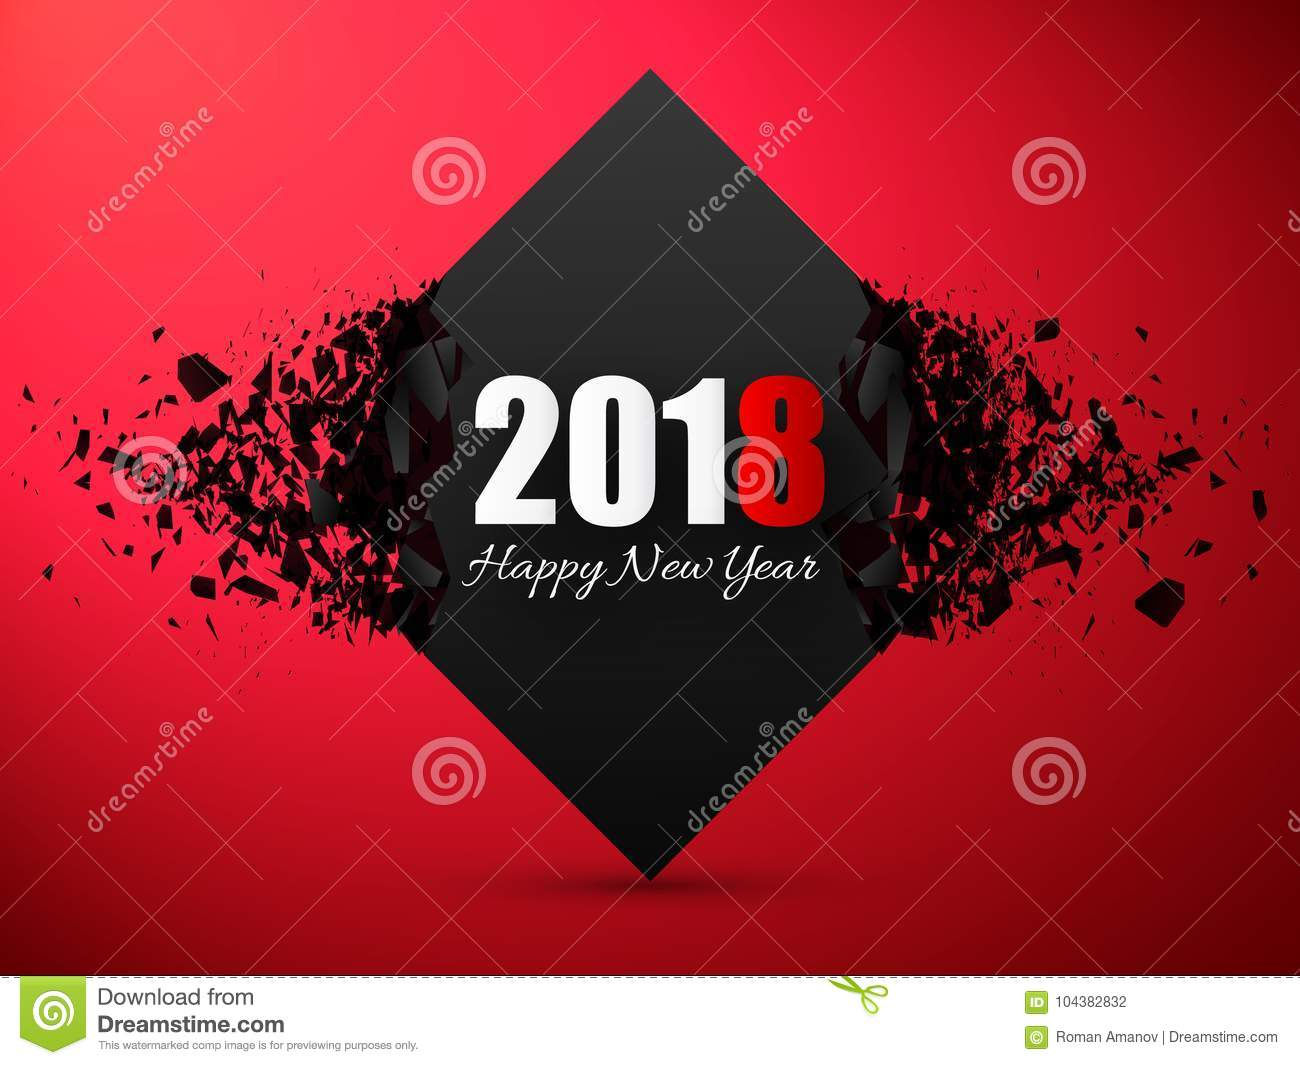 download happy new year 2018 abstract background banner with explosion effect stock vector